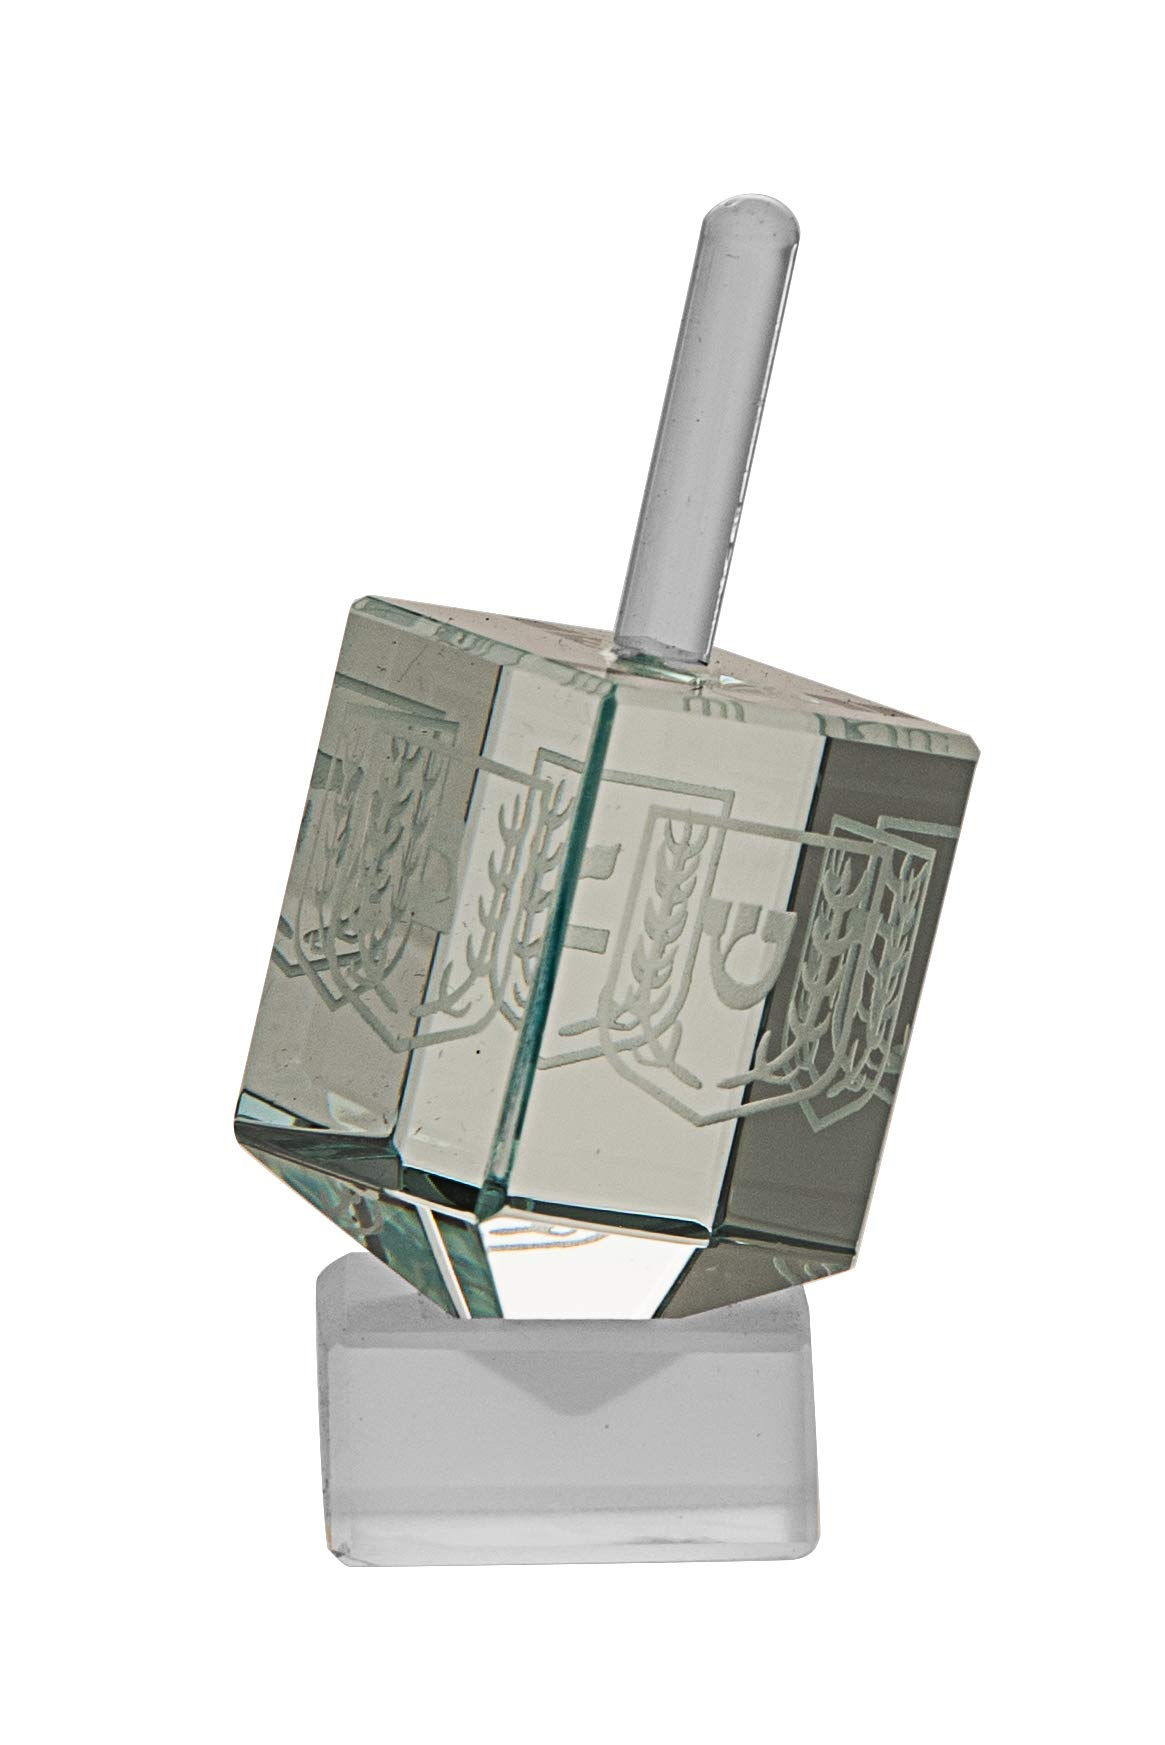 Crystal Pale Green Dreidel - Collectible - Etched Hebrew Letters-by Copa Judqaica